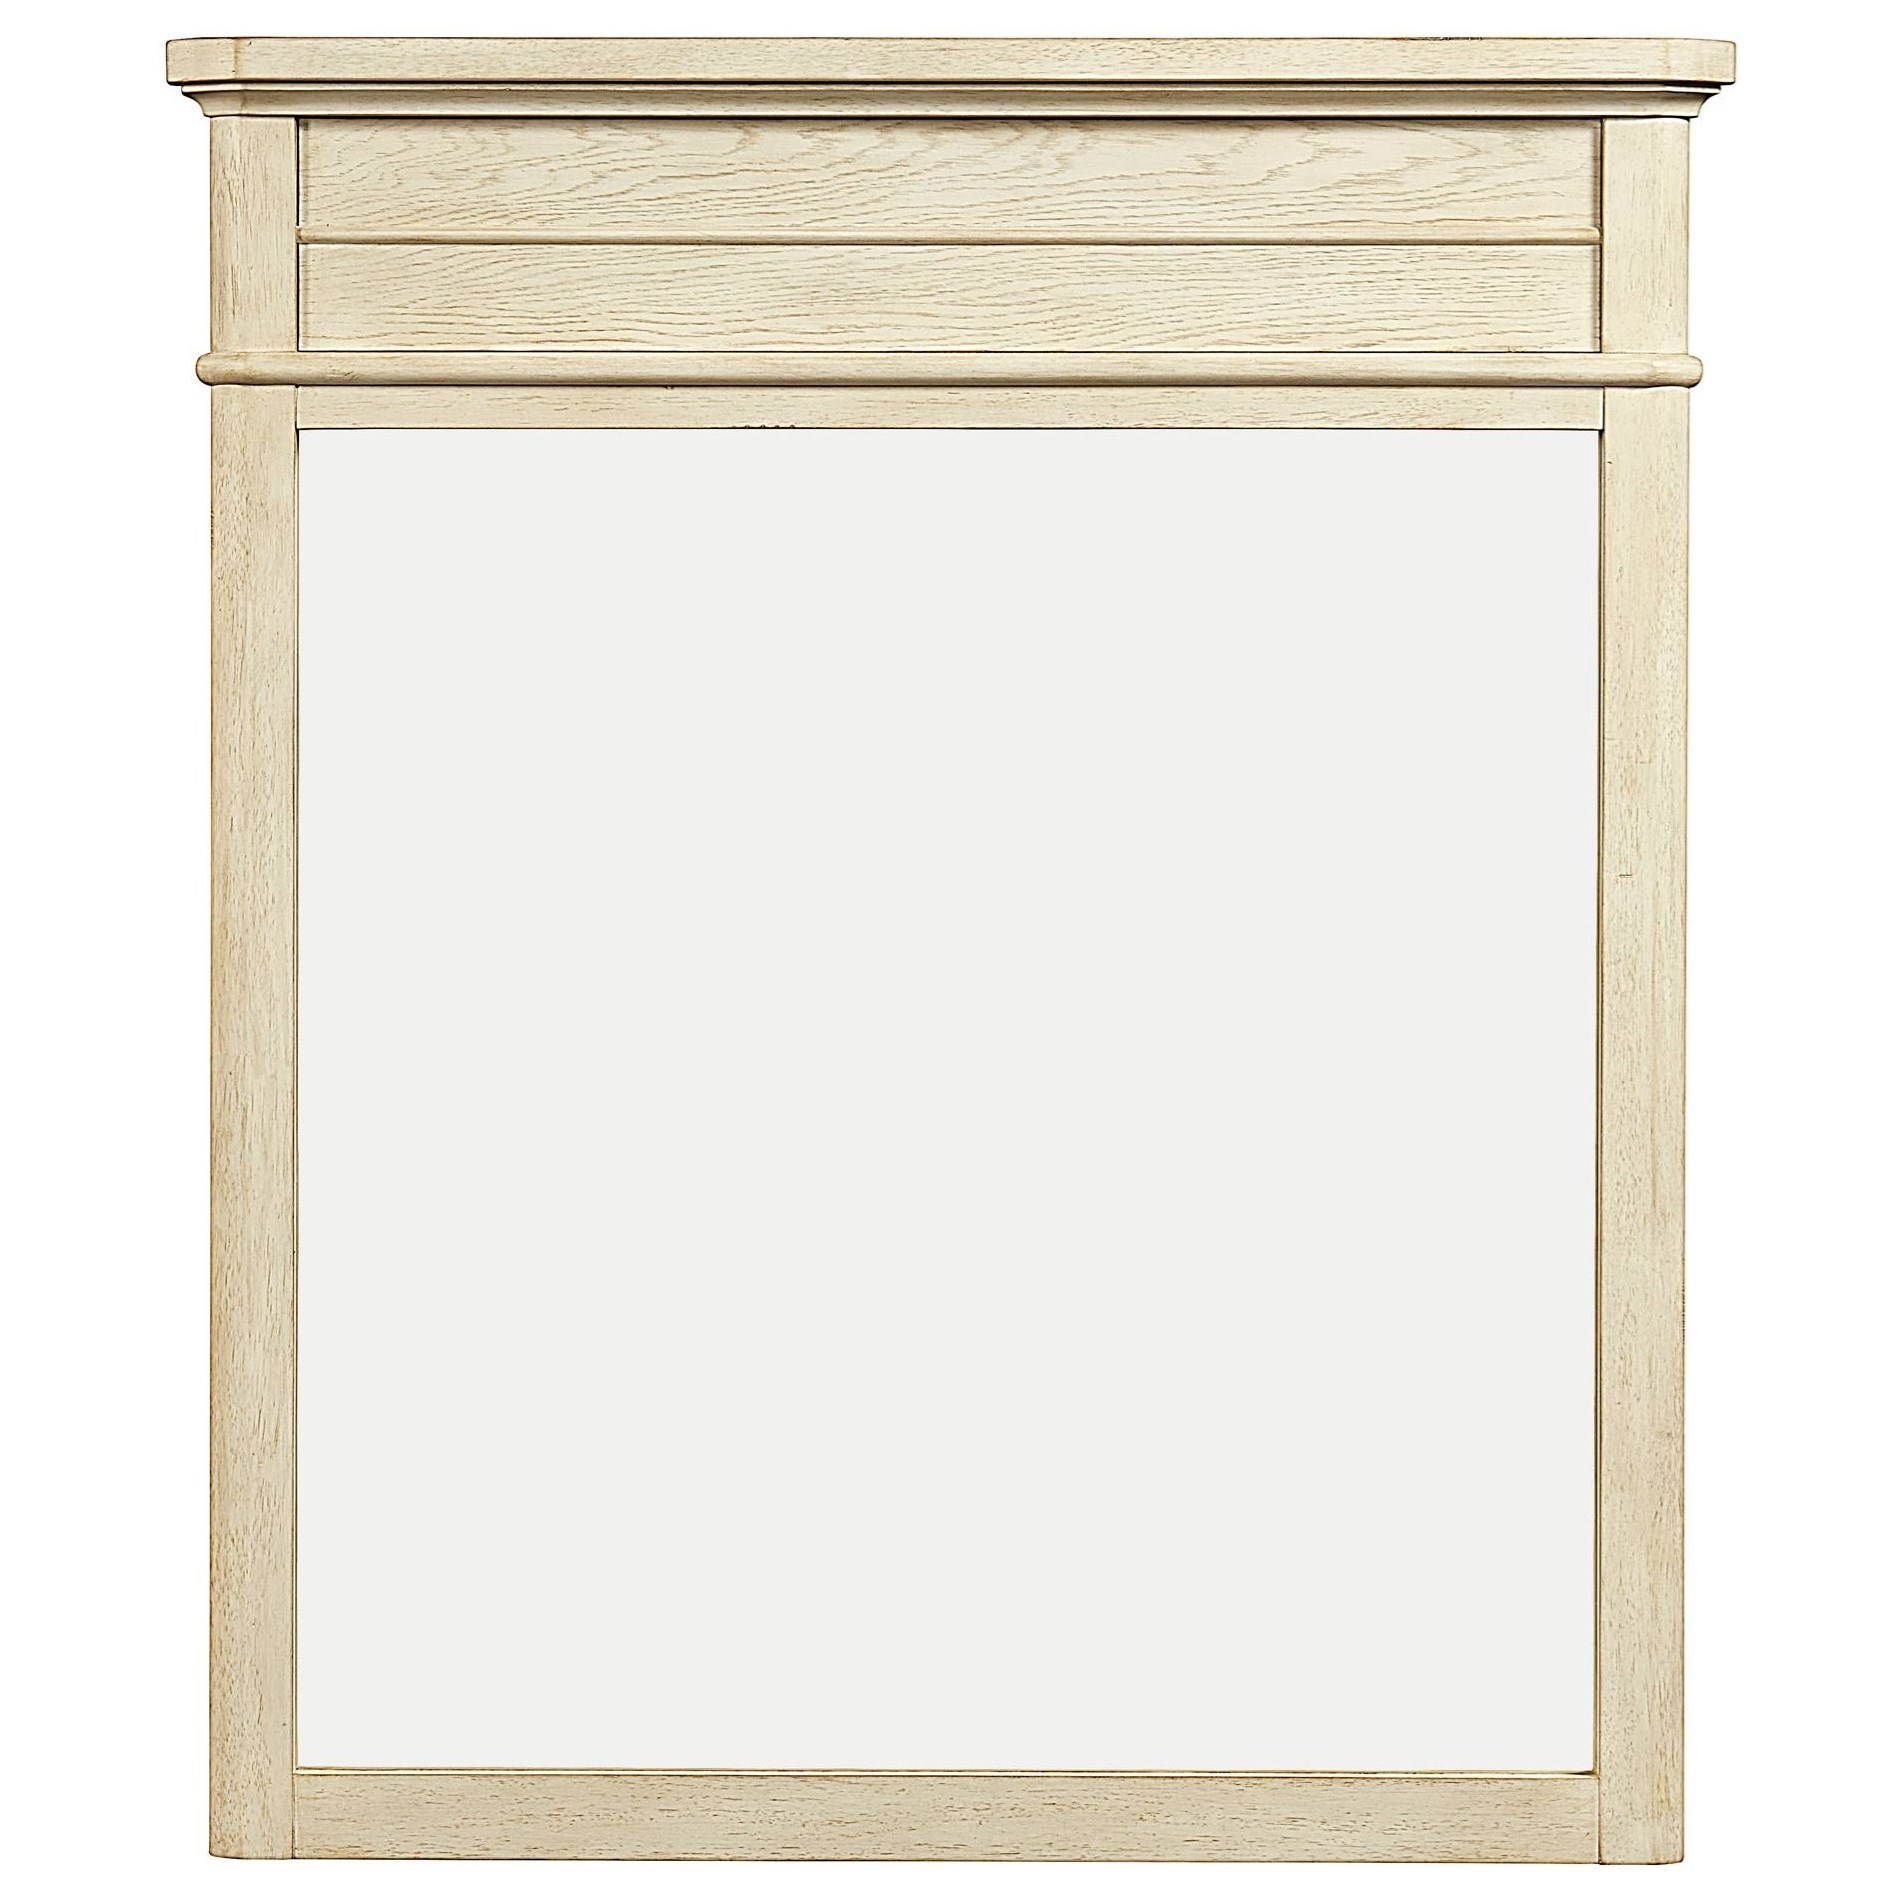 Stone & Leigh Furniture Driftwood Park Mirror - Item Number: 536-23-30